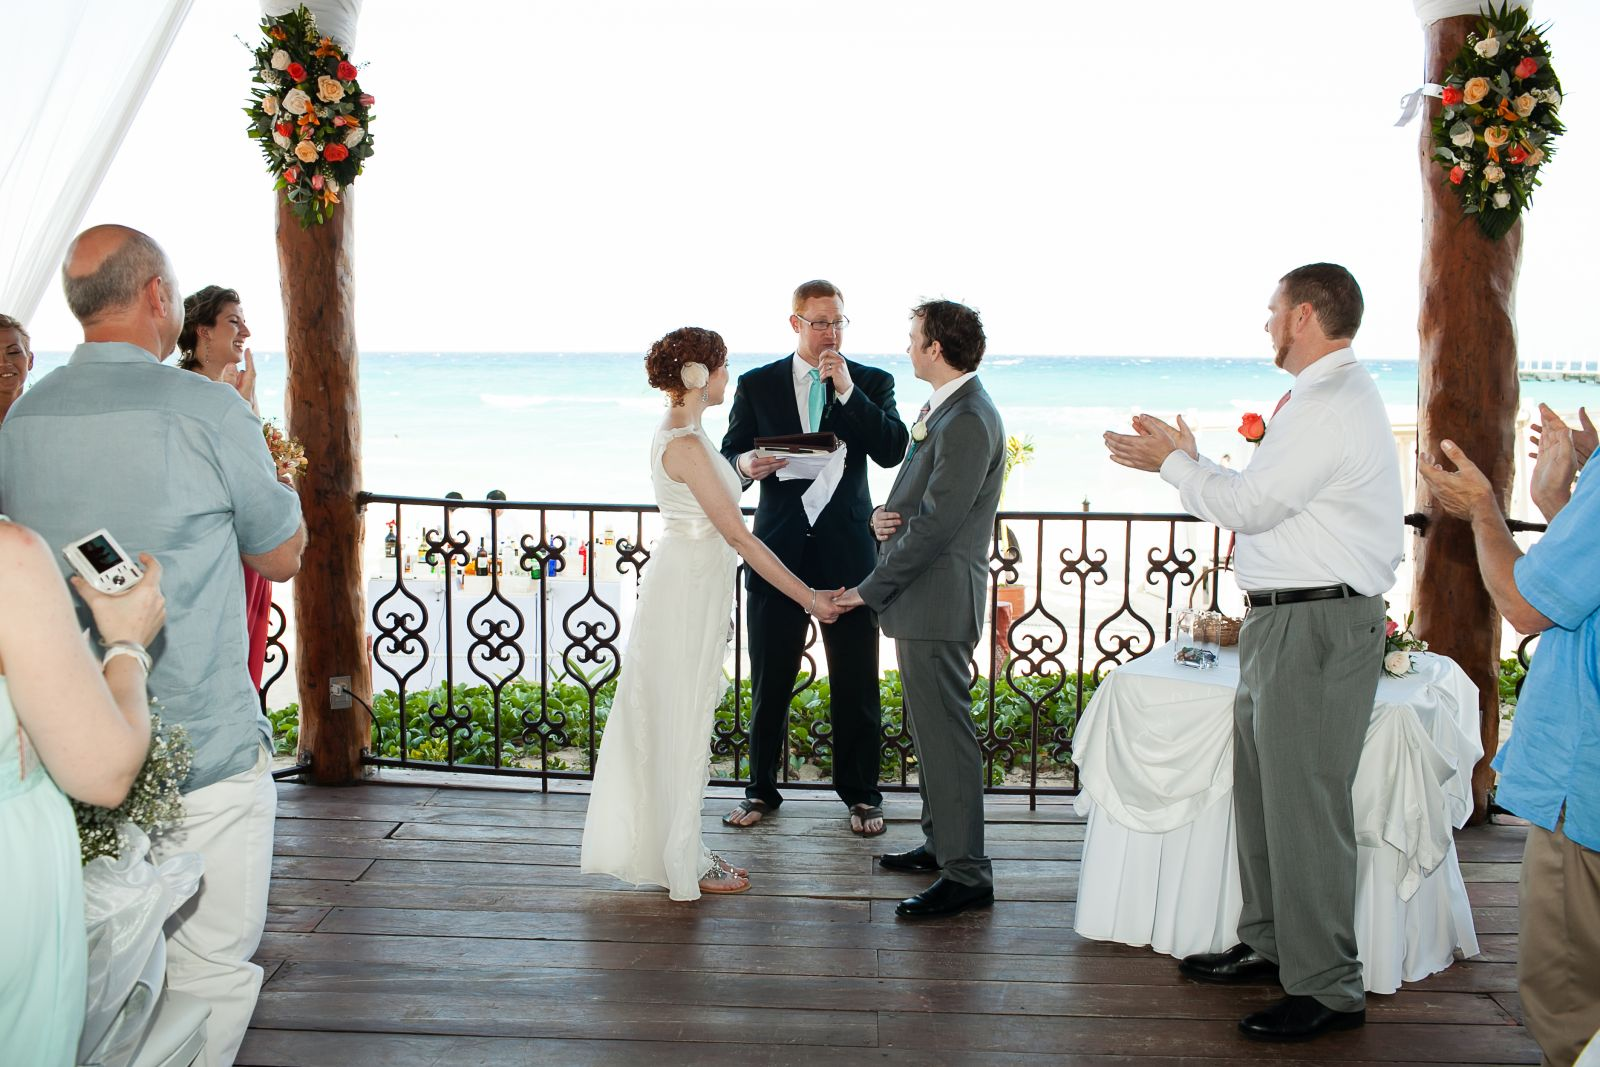 Wedding Gazebo at The Royal Playa del Carmen...We fit 40 guests in the gazebo with us and it made for such an intimate ceremony!   They block off the beach around the Gazebo and have staff stationed to stop passerby from walking around or watching the c